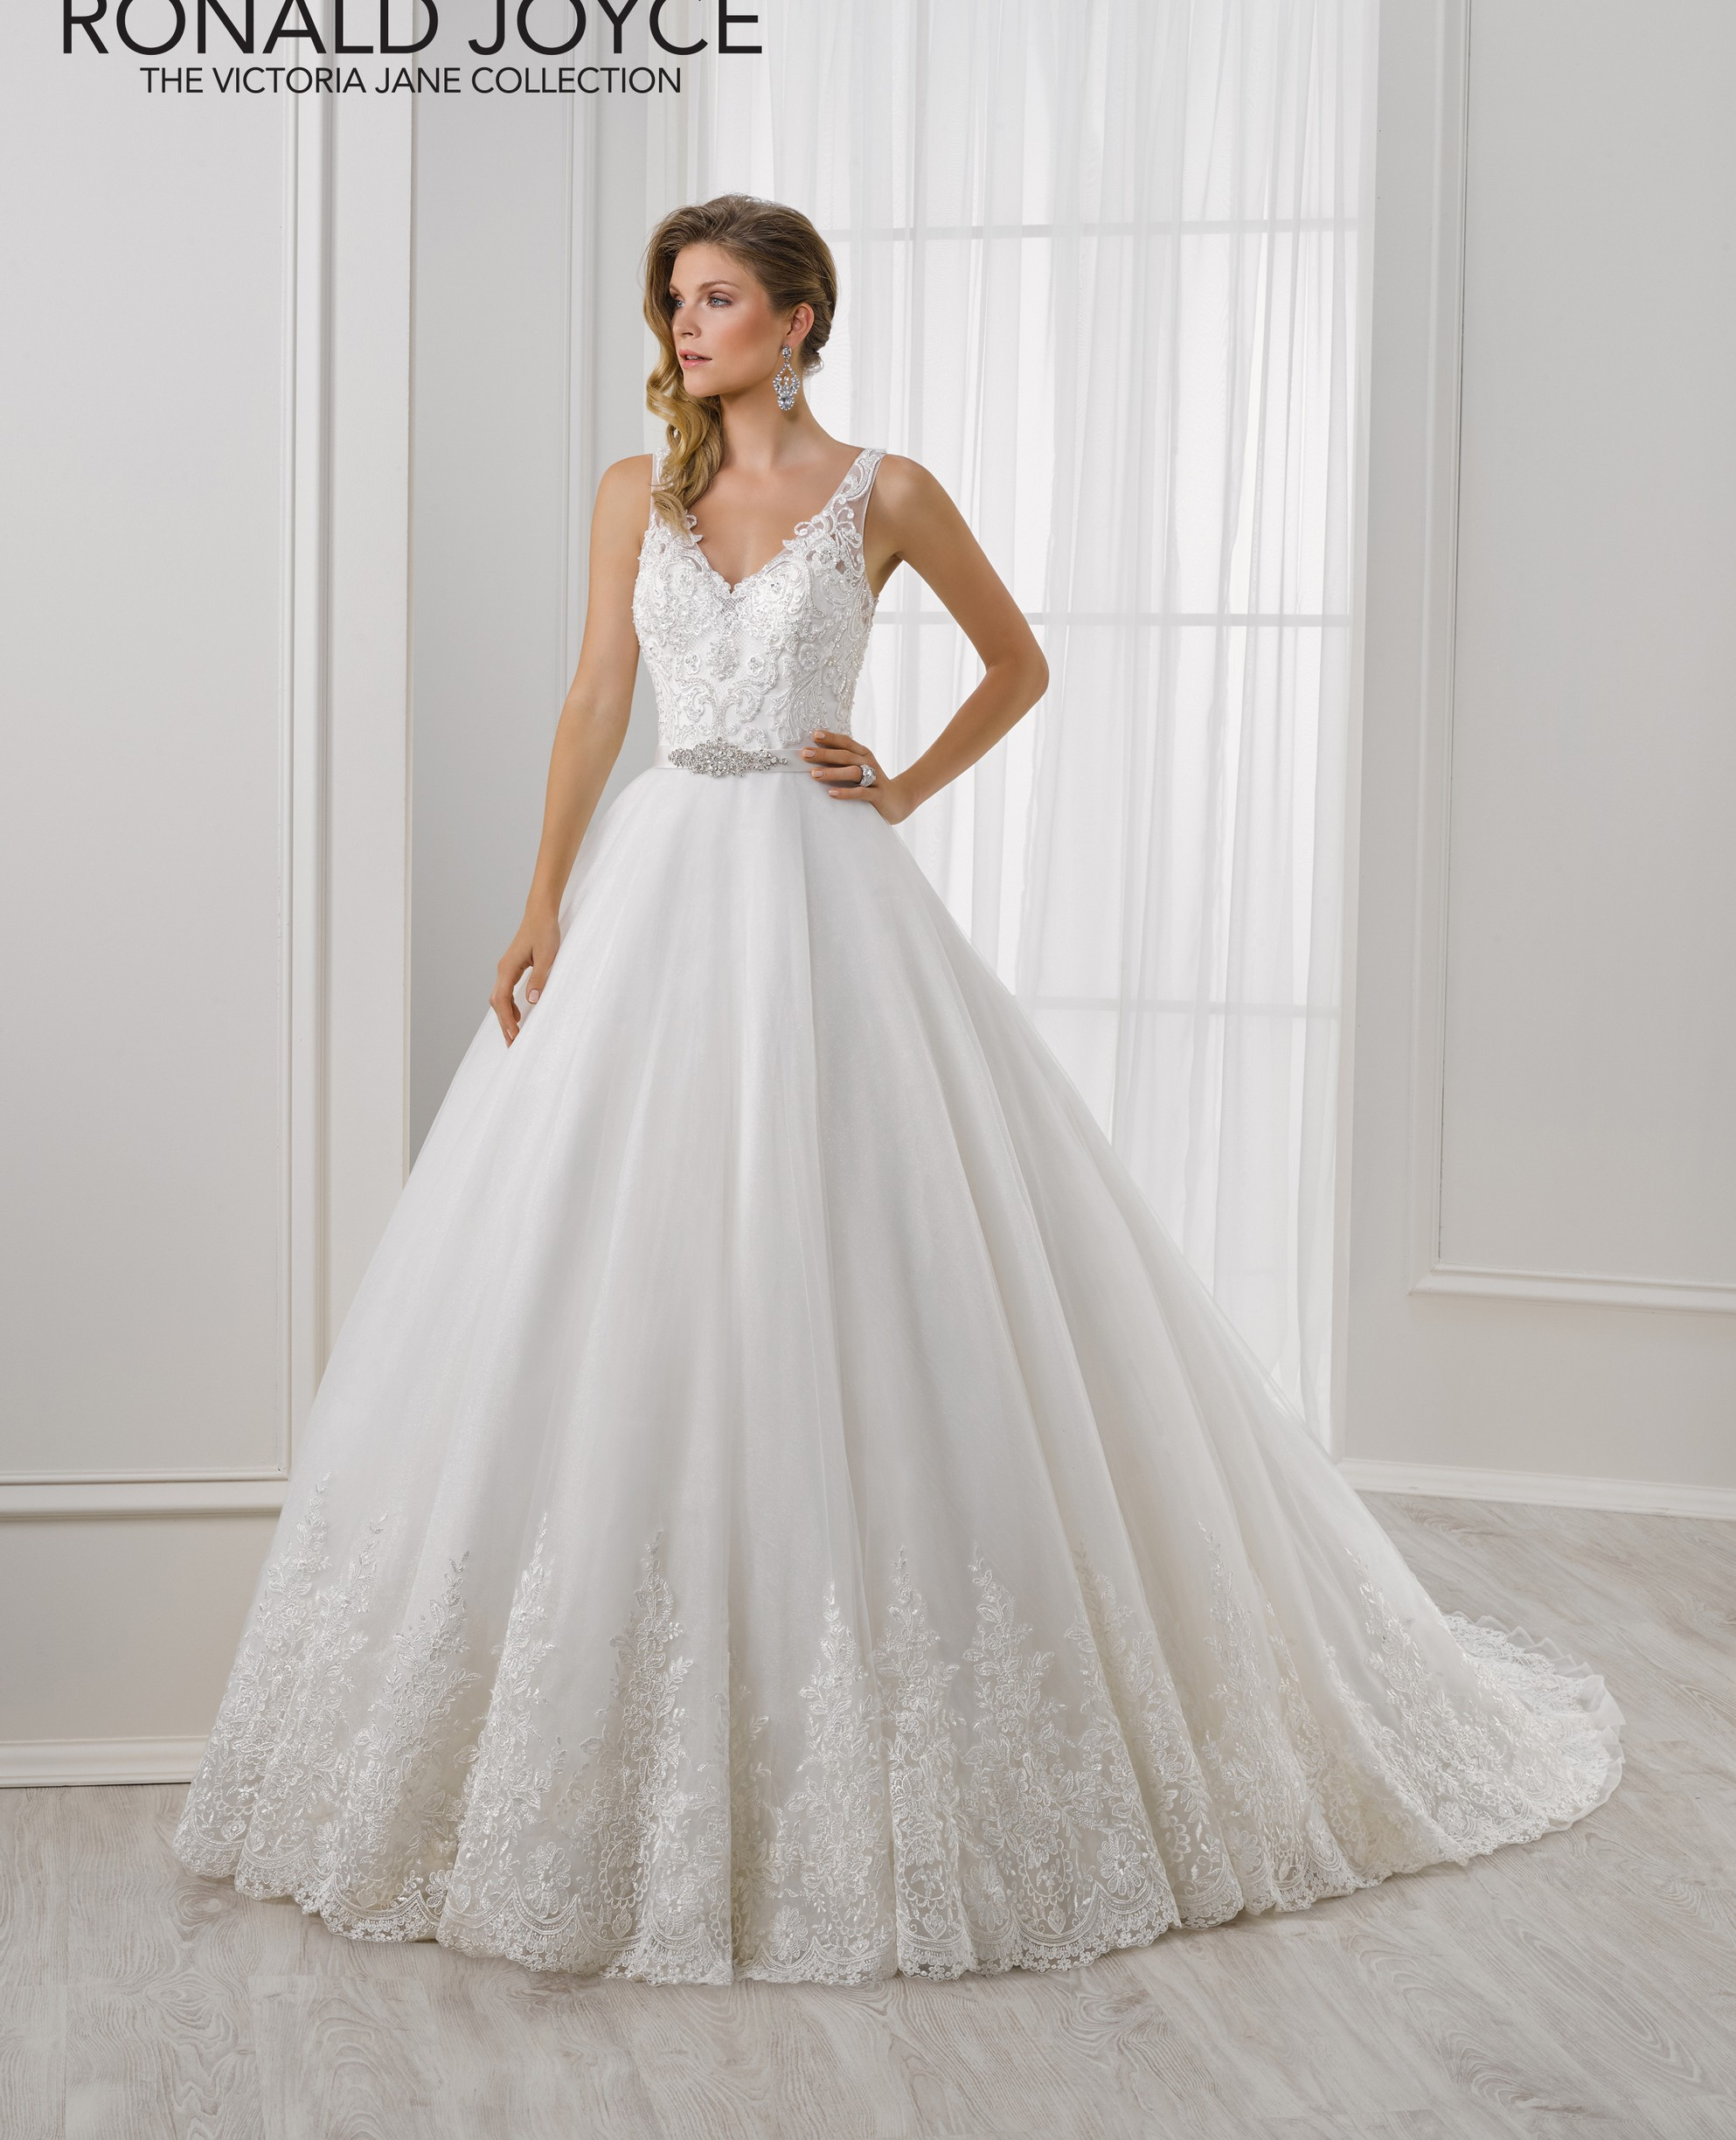 Ronald Joyce Bridal Gowns